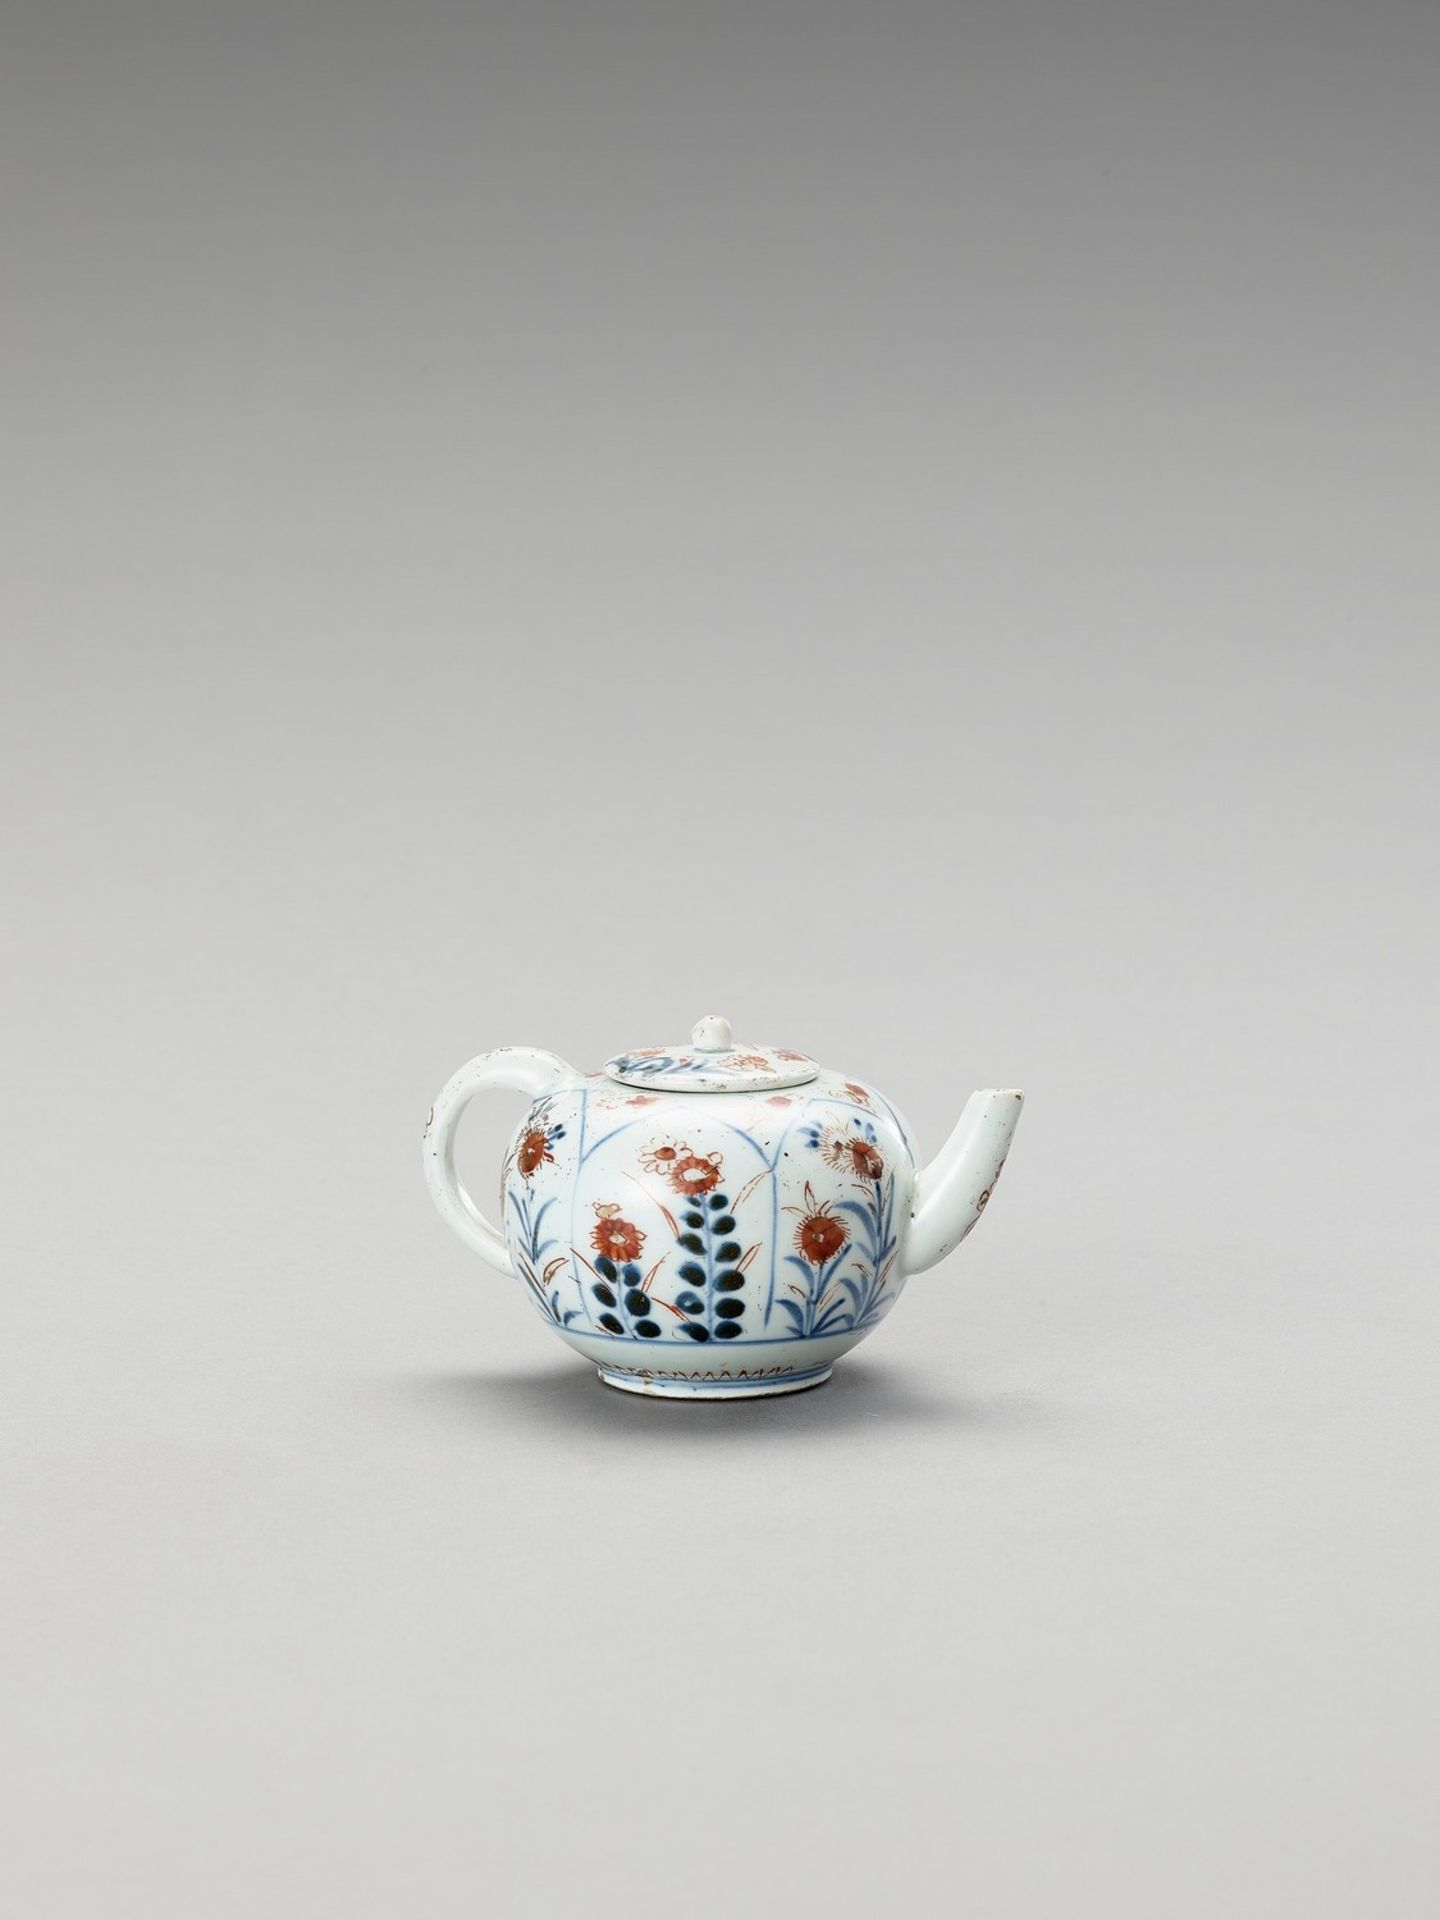 AN IMARI PORCELAIN TEAPOT WITH COVER